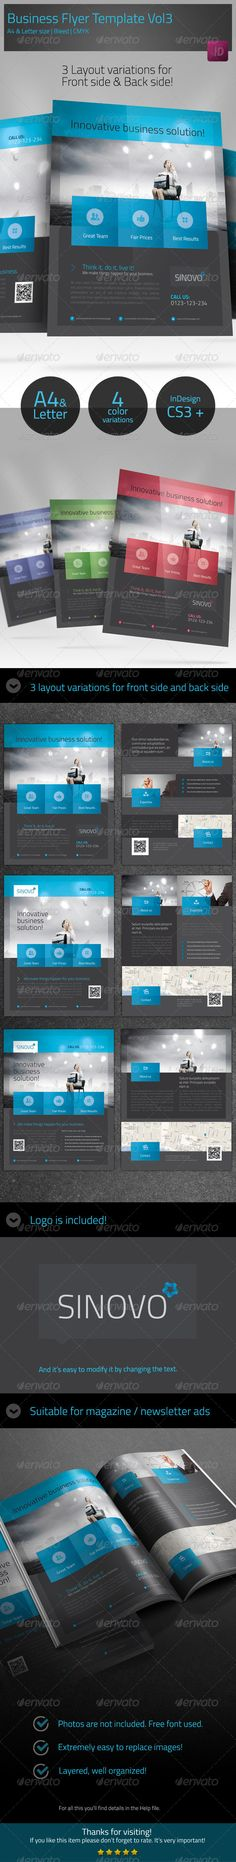 Business Corporate Flyer Template vol3 #GraphicRiver Business Flyer Description This Business / Corporate flyer is ideal for companies who want to present themselves in an elegant, professional and organized manner. It can help you summarize the important aspects about the company. It's suitable also for magazine / newsletter ads, posters, pdf email attachment. The package includes 3 layouts variations for front and 3 layouts variations for back side. All elements in the design such as text…